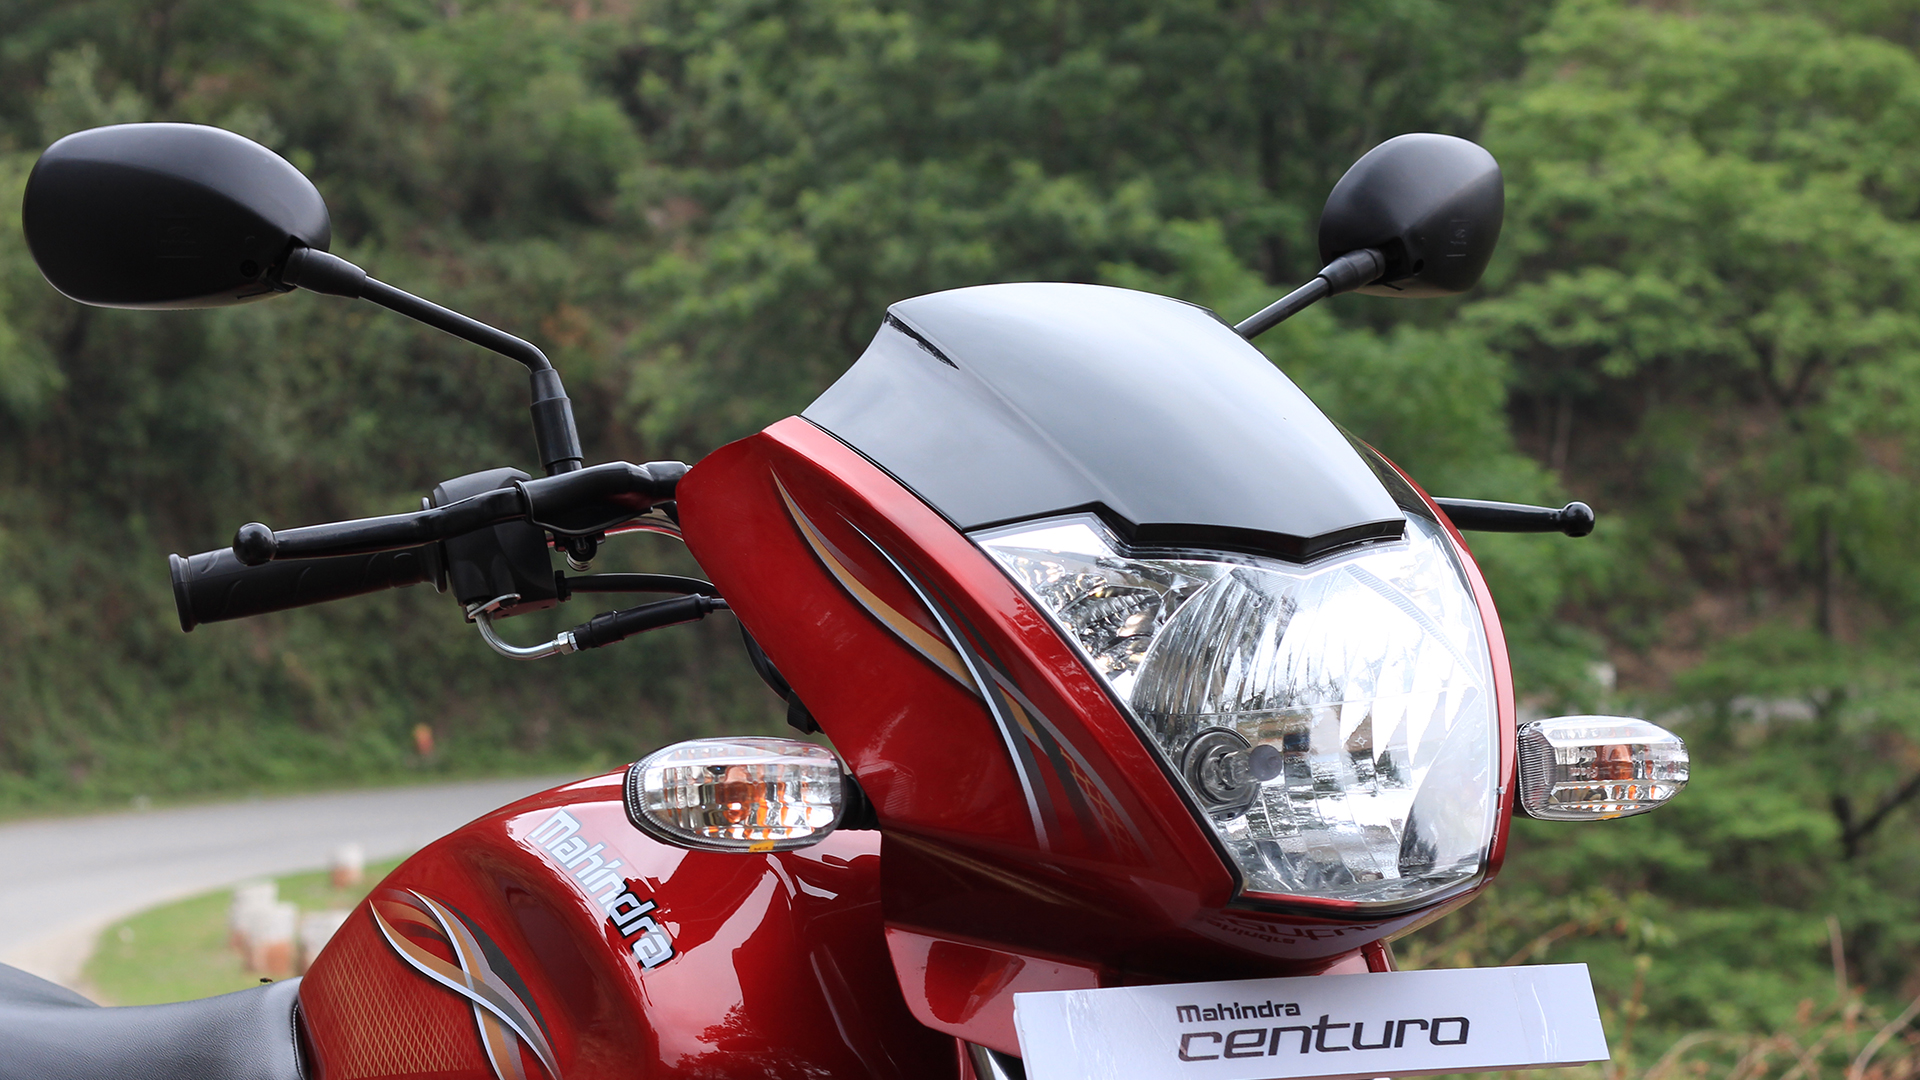 Mahindra Centuro 2015 Rockstar Price Mileage Reviews